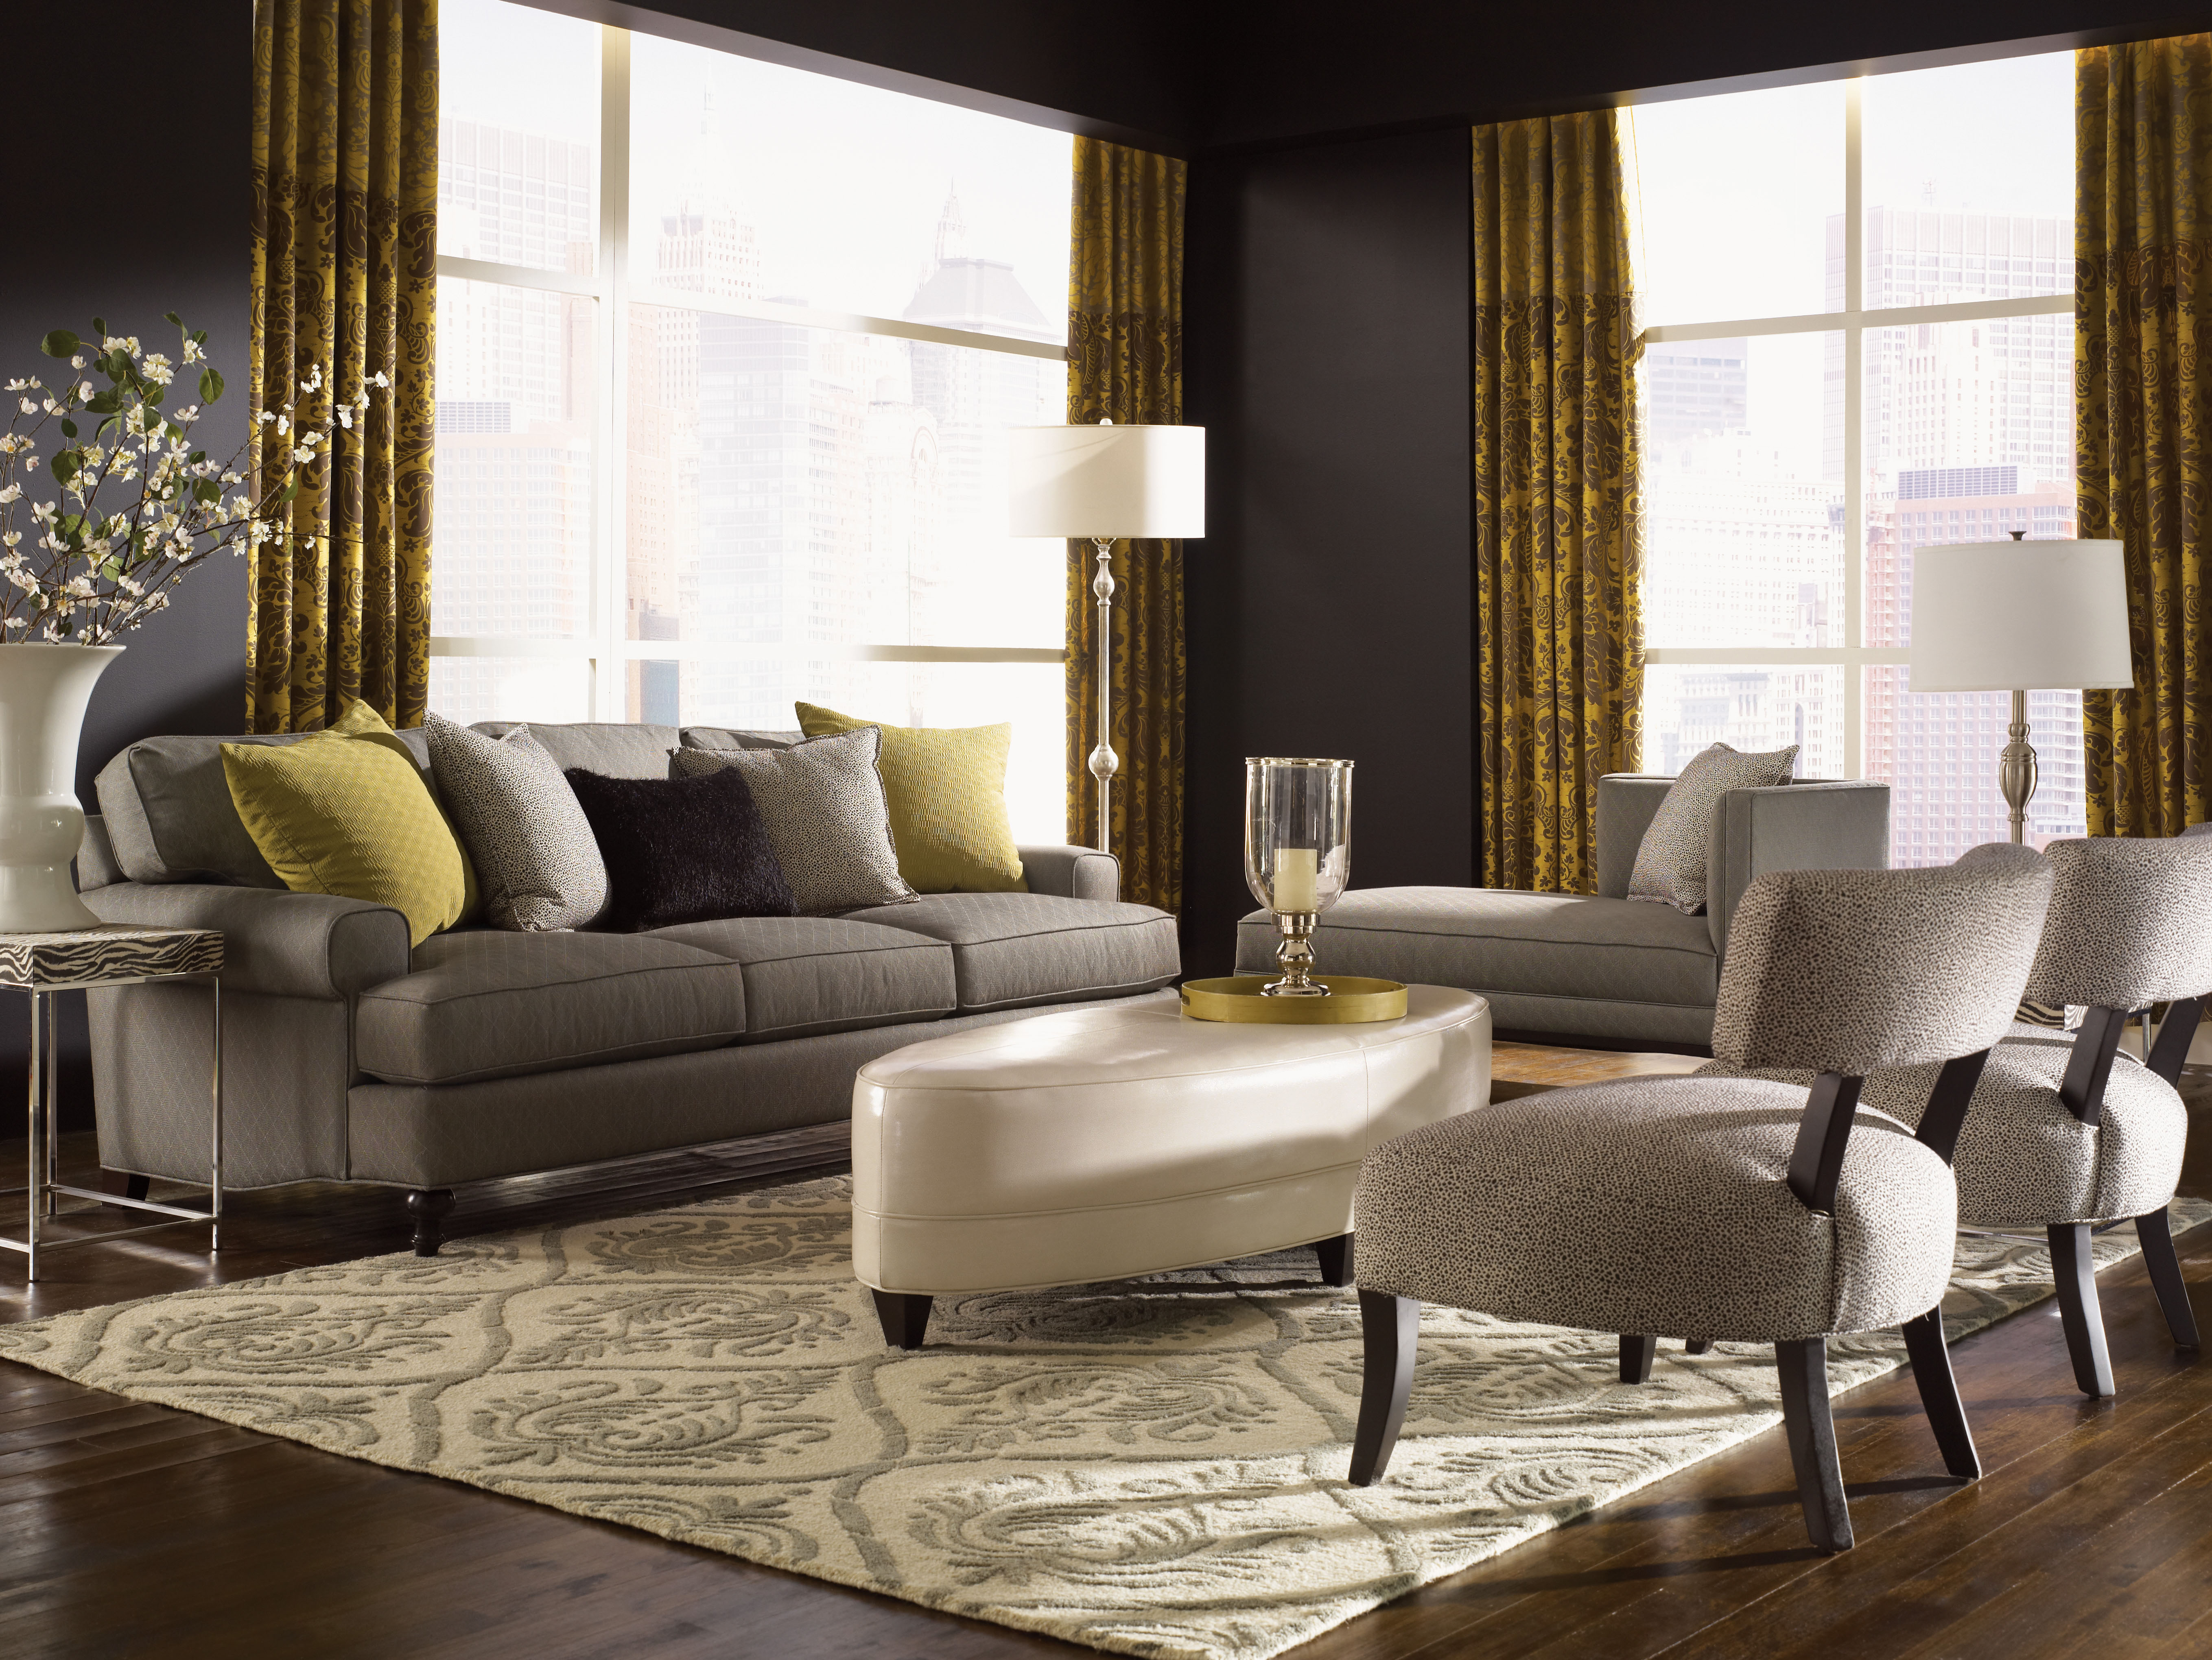 Get free and valid fabiia voucher code for fabiia unique for Decor home furnishing